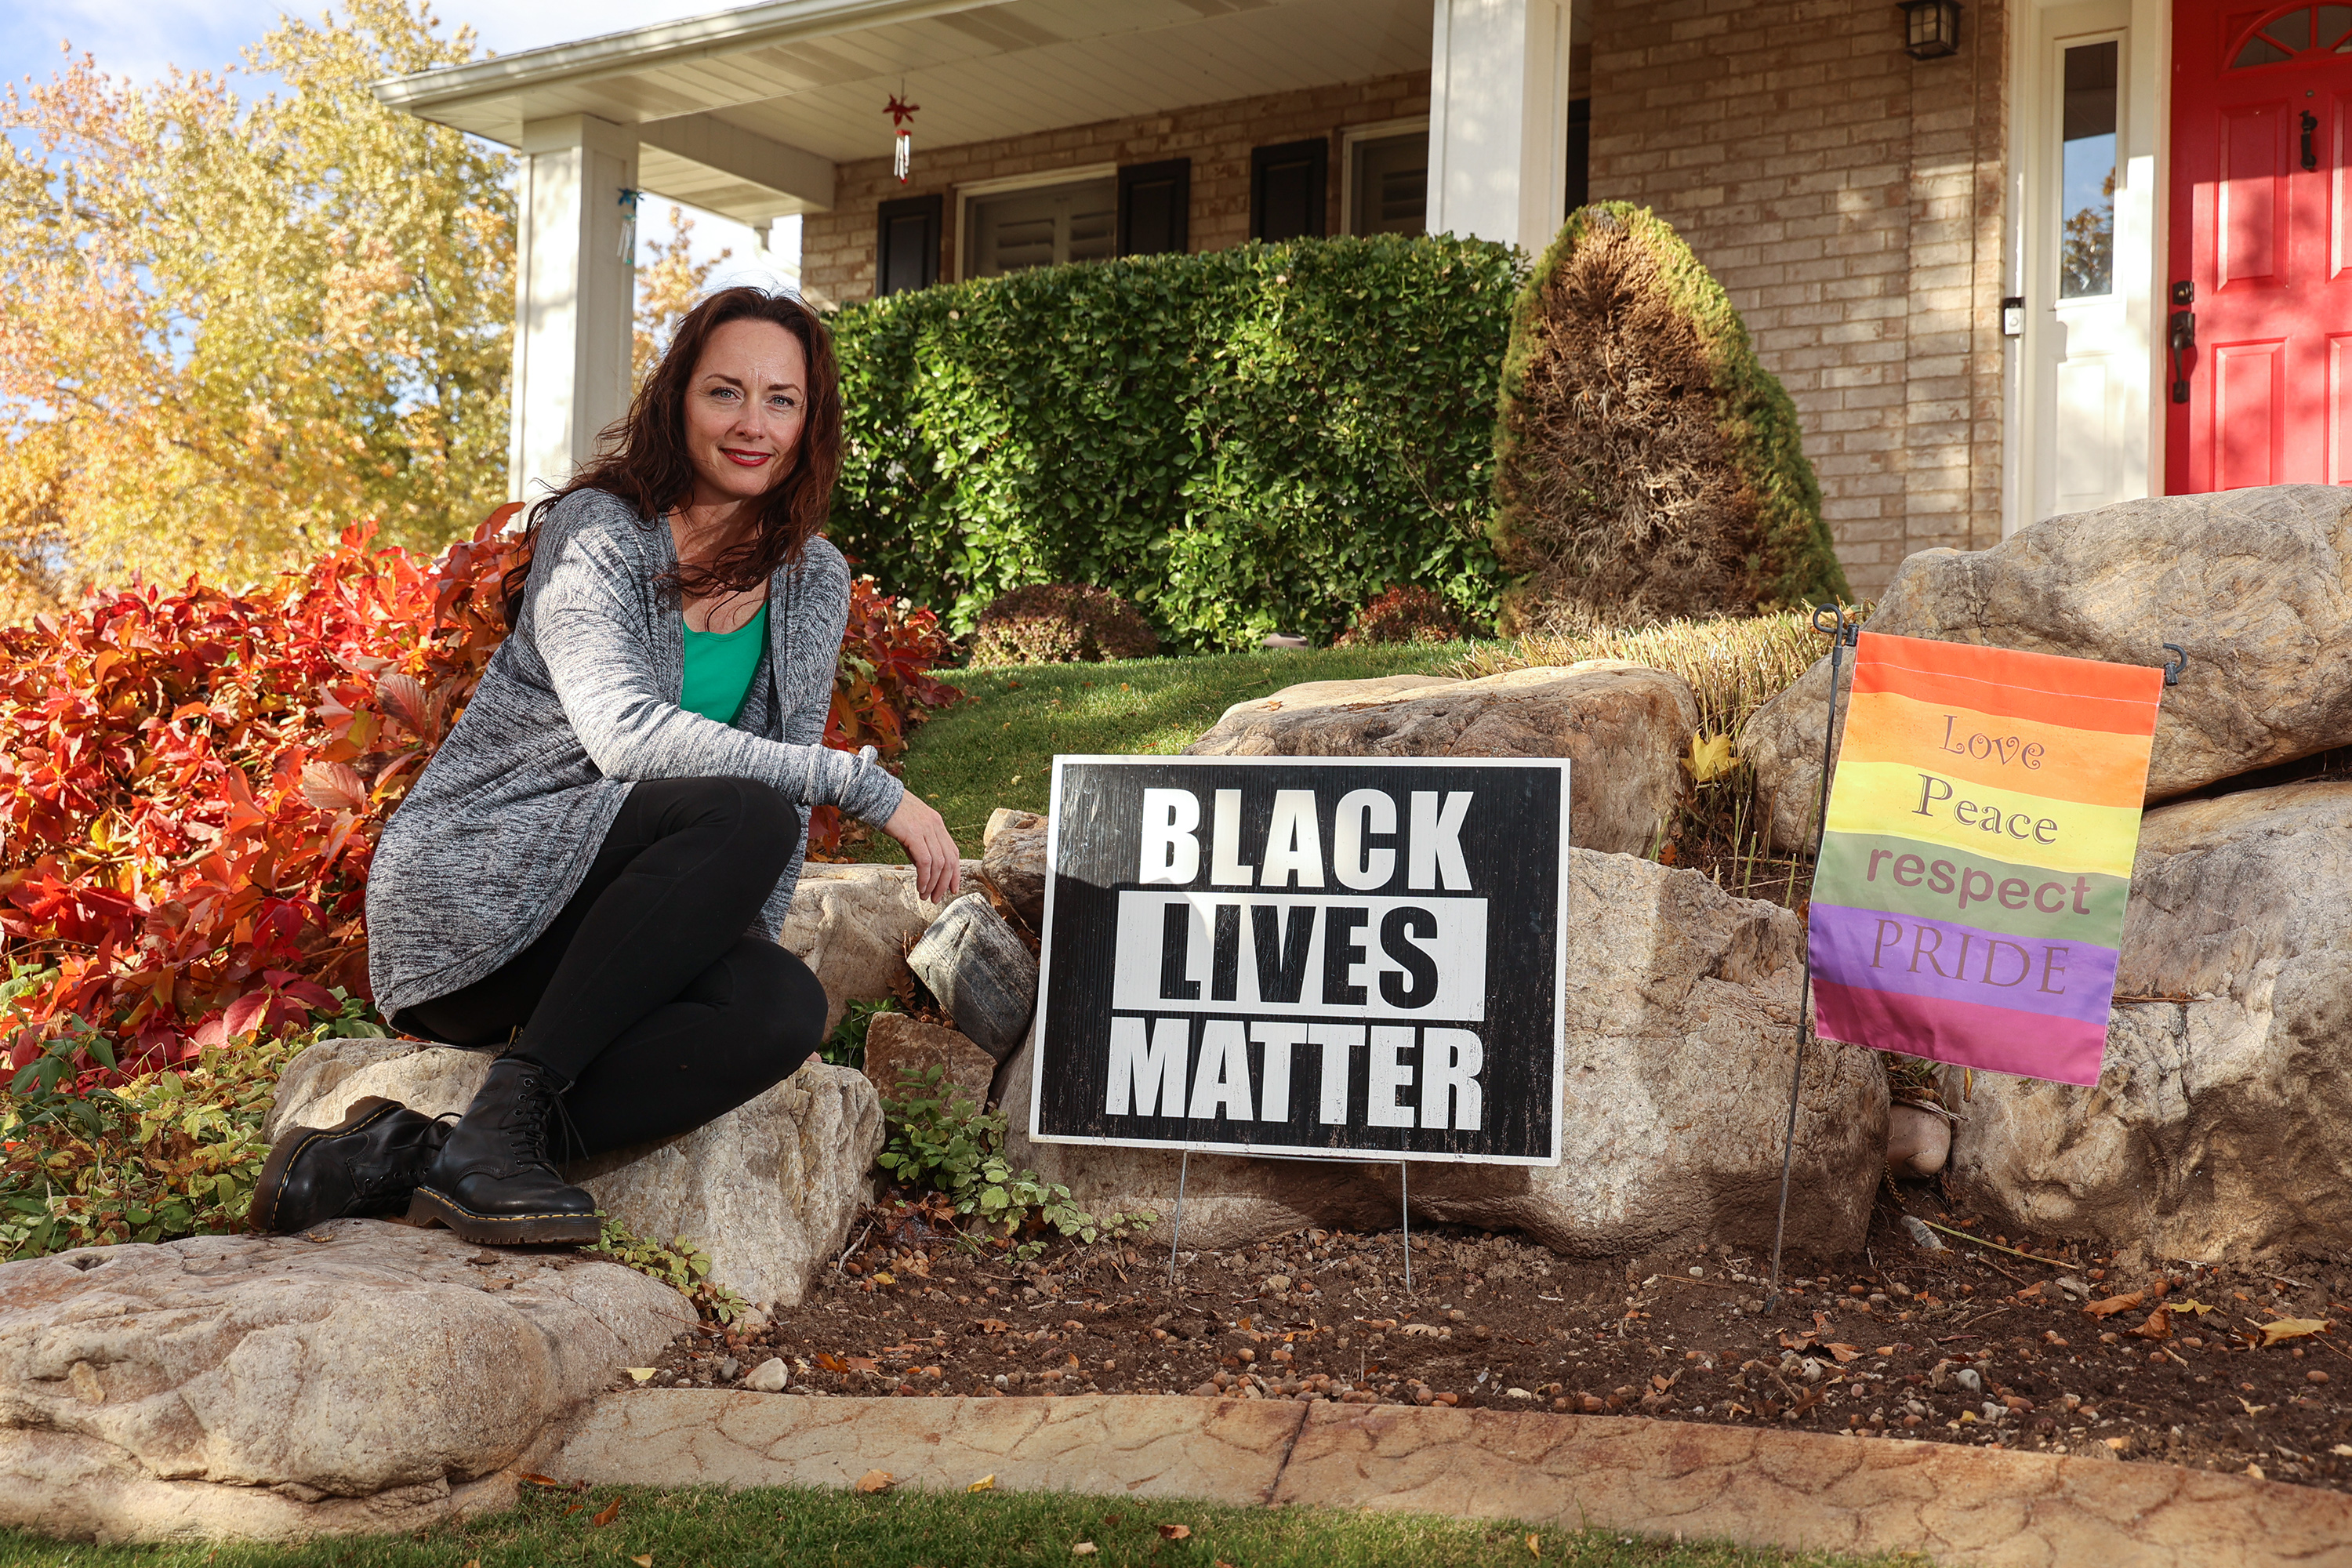 Shauntel Black poses for photos at her Layton home.